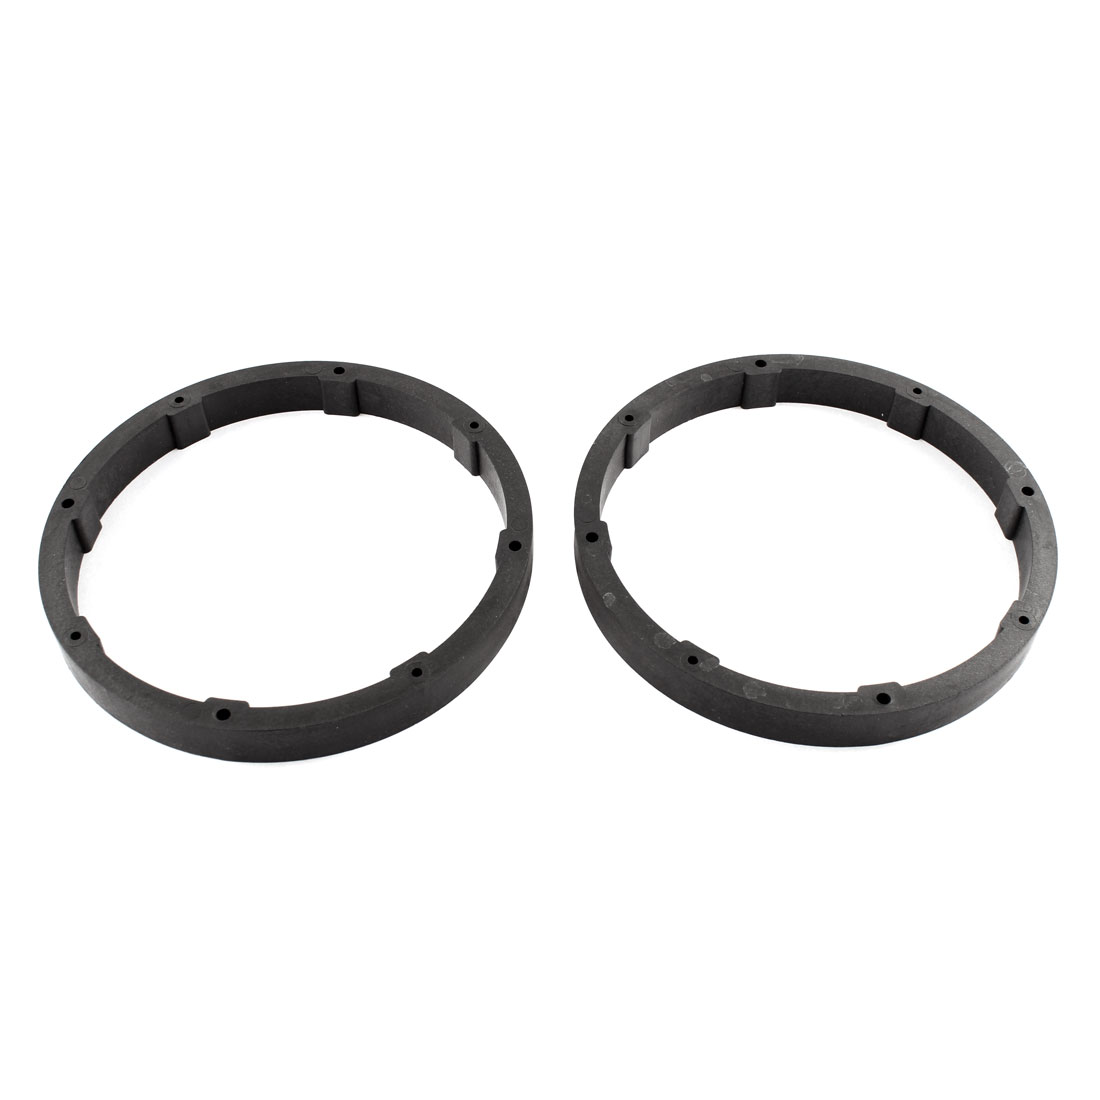 "Car Auto Black 6.5"" Plastic Round Speaker Spacers Ring 17mm Depth 2 Pcs"